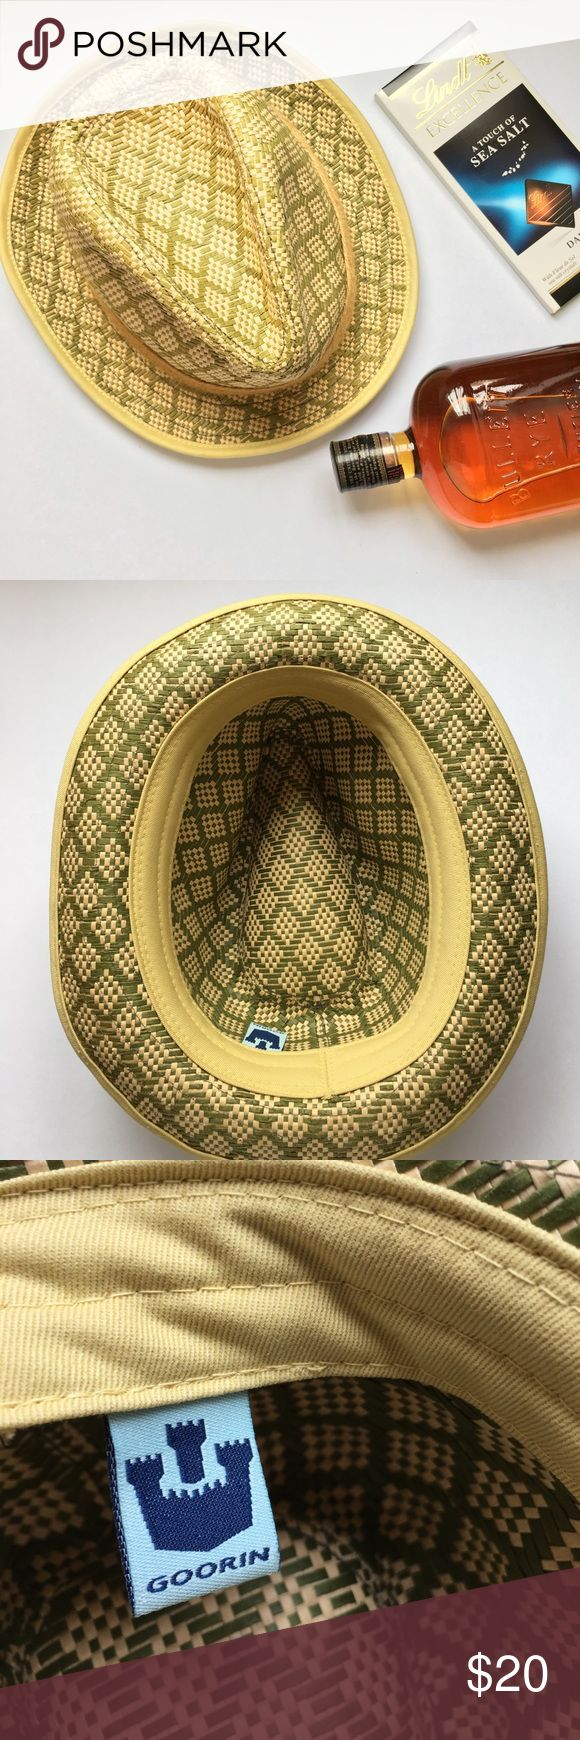 Goorin Straw Fedora Beach Hat Men's (or women's) Perfect for beach getaway this spring or summer. Natural straw and dyed olive green weave. Goorin is one of the well known haberdasheries left- excellent hat with some minor pulls in the top crease of hat (see last photo). size medium in man but a great unisex hat. Lots of vacation life left! Goorin  Accessories Hats